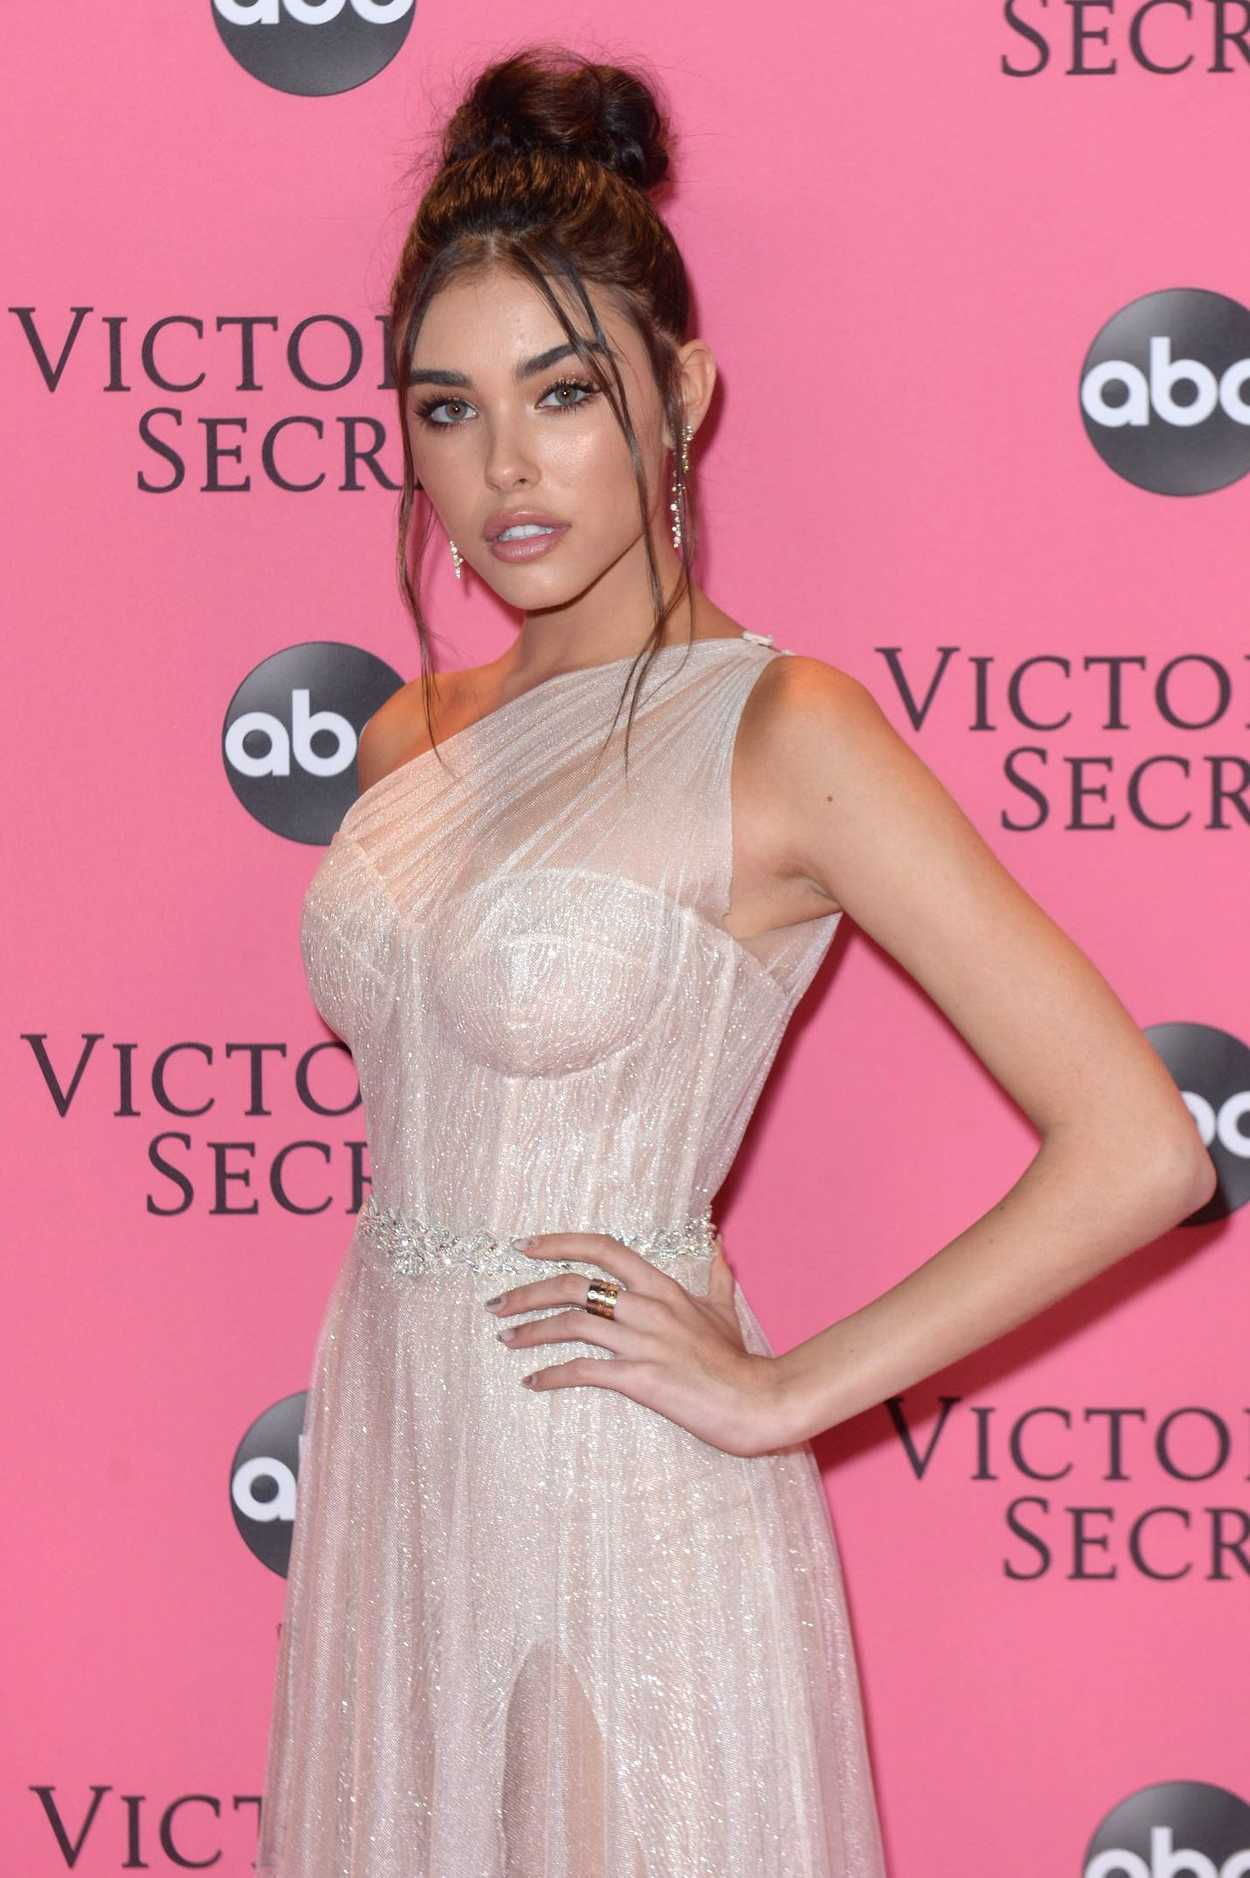 madison beer attends 2018 victoria u2019s secret fashion show at pier 94 in new york city 11  08  2018